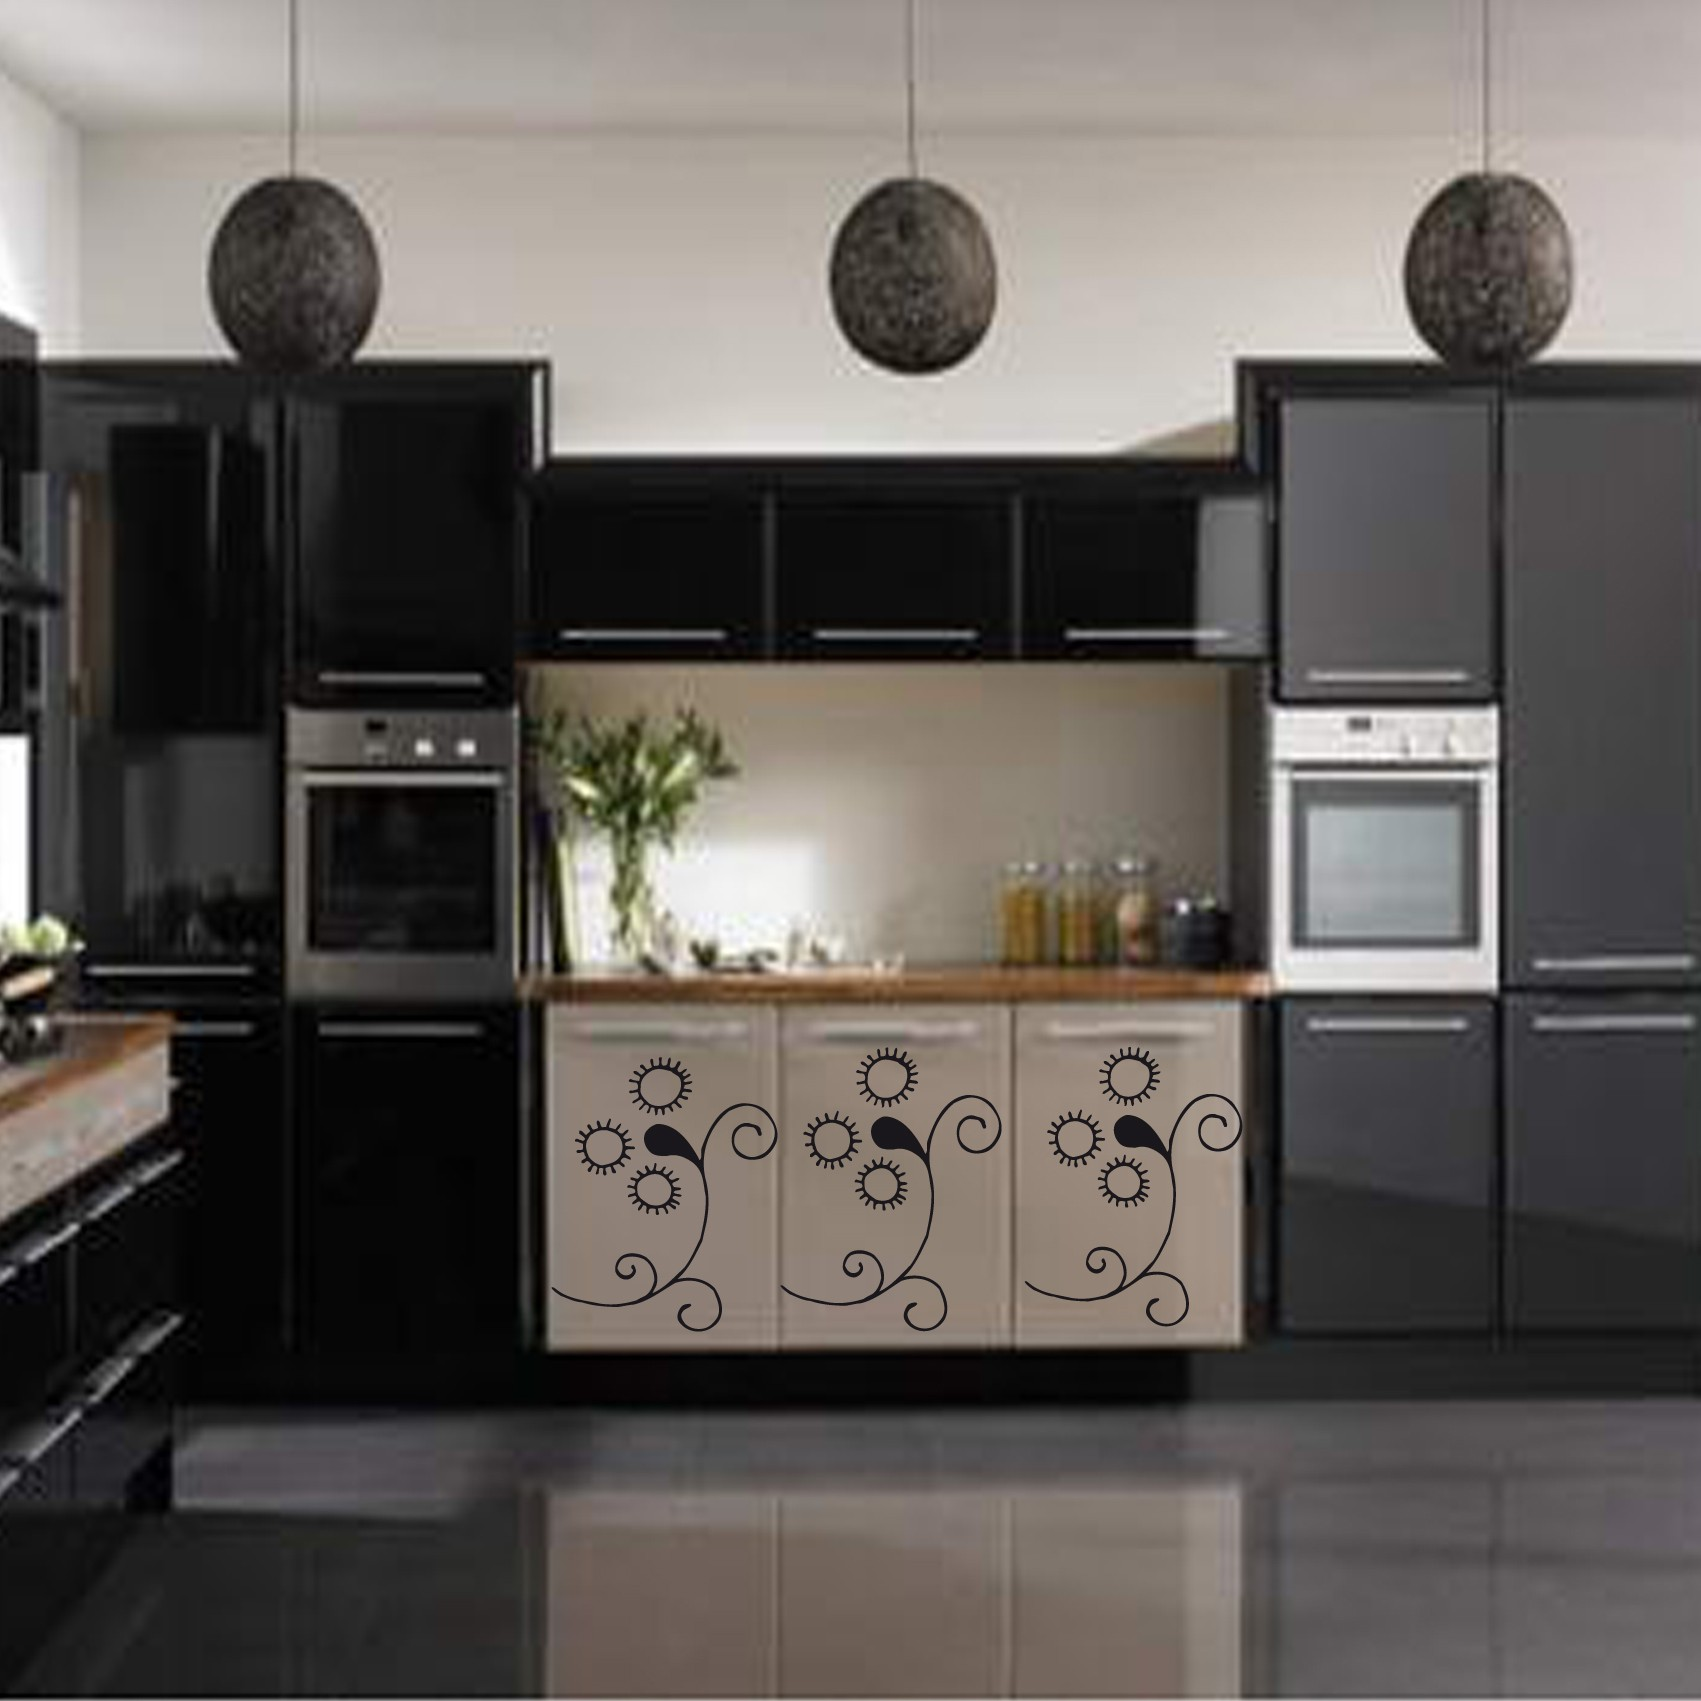 revetement pour meuble de cuisine comment rajeunir une cuisine moche crdence carrelage meuble. Black Bedroom Furniture Sets. Home Design Ideas